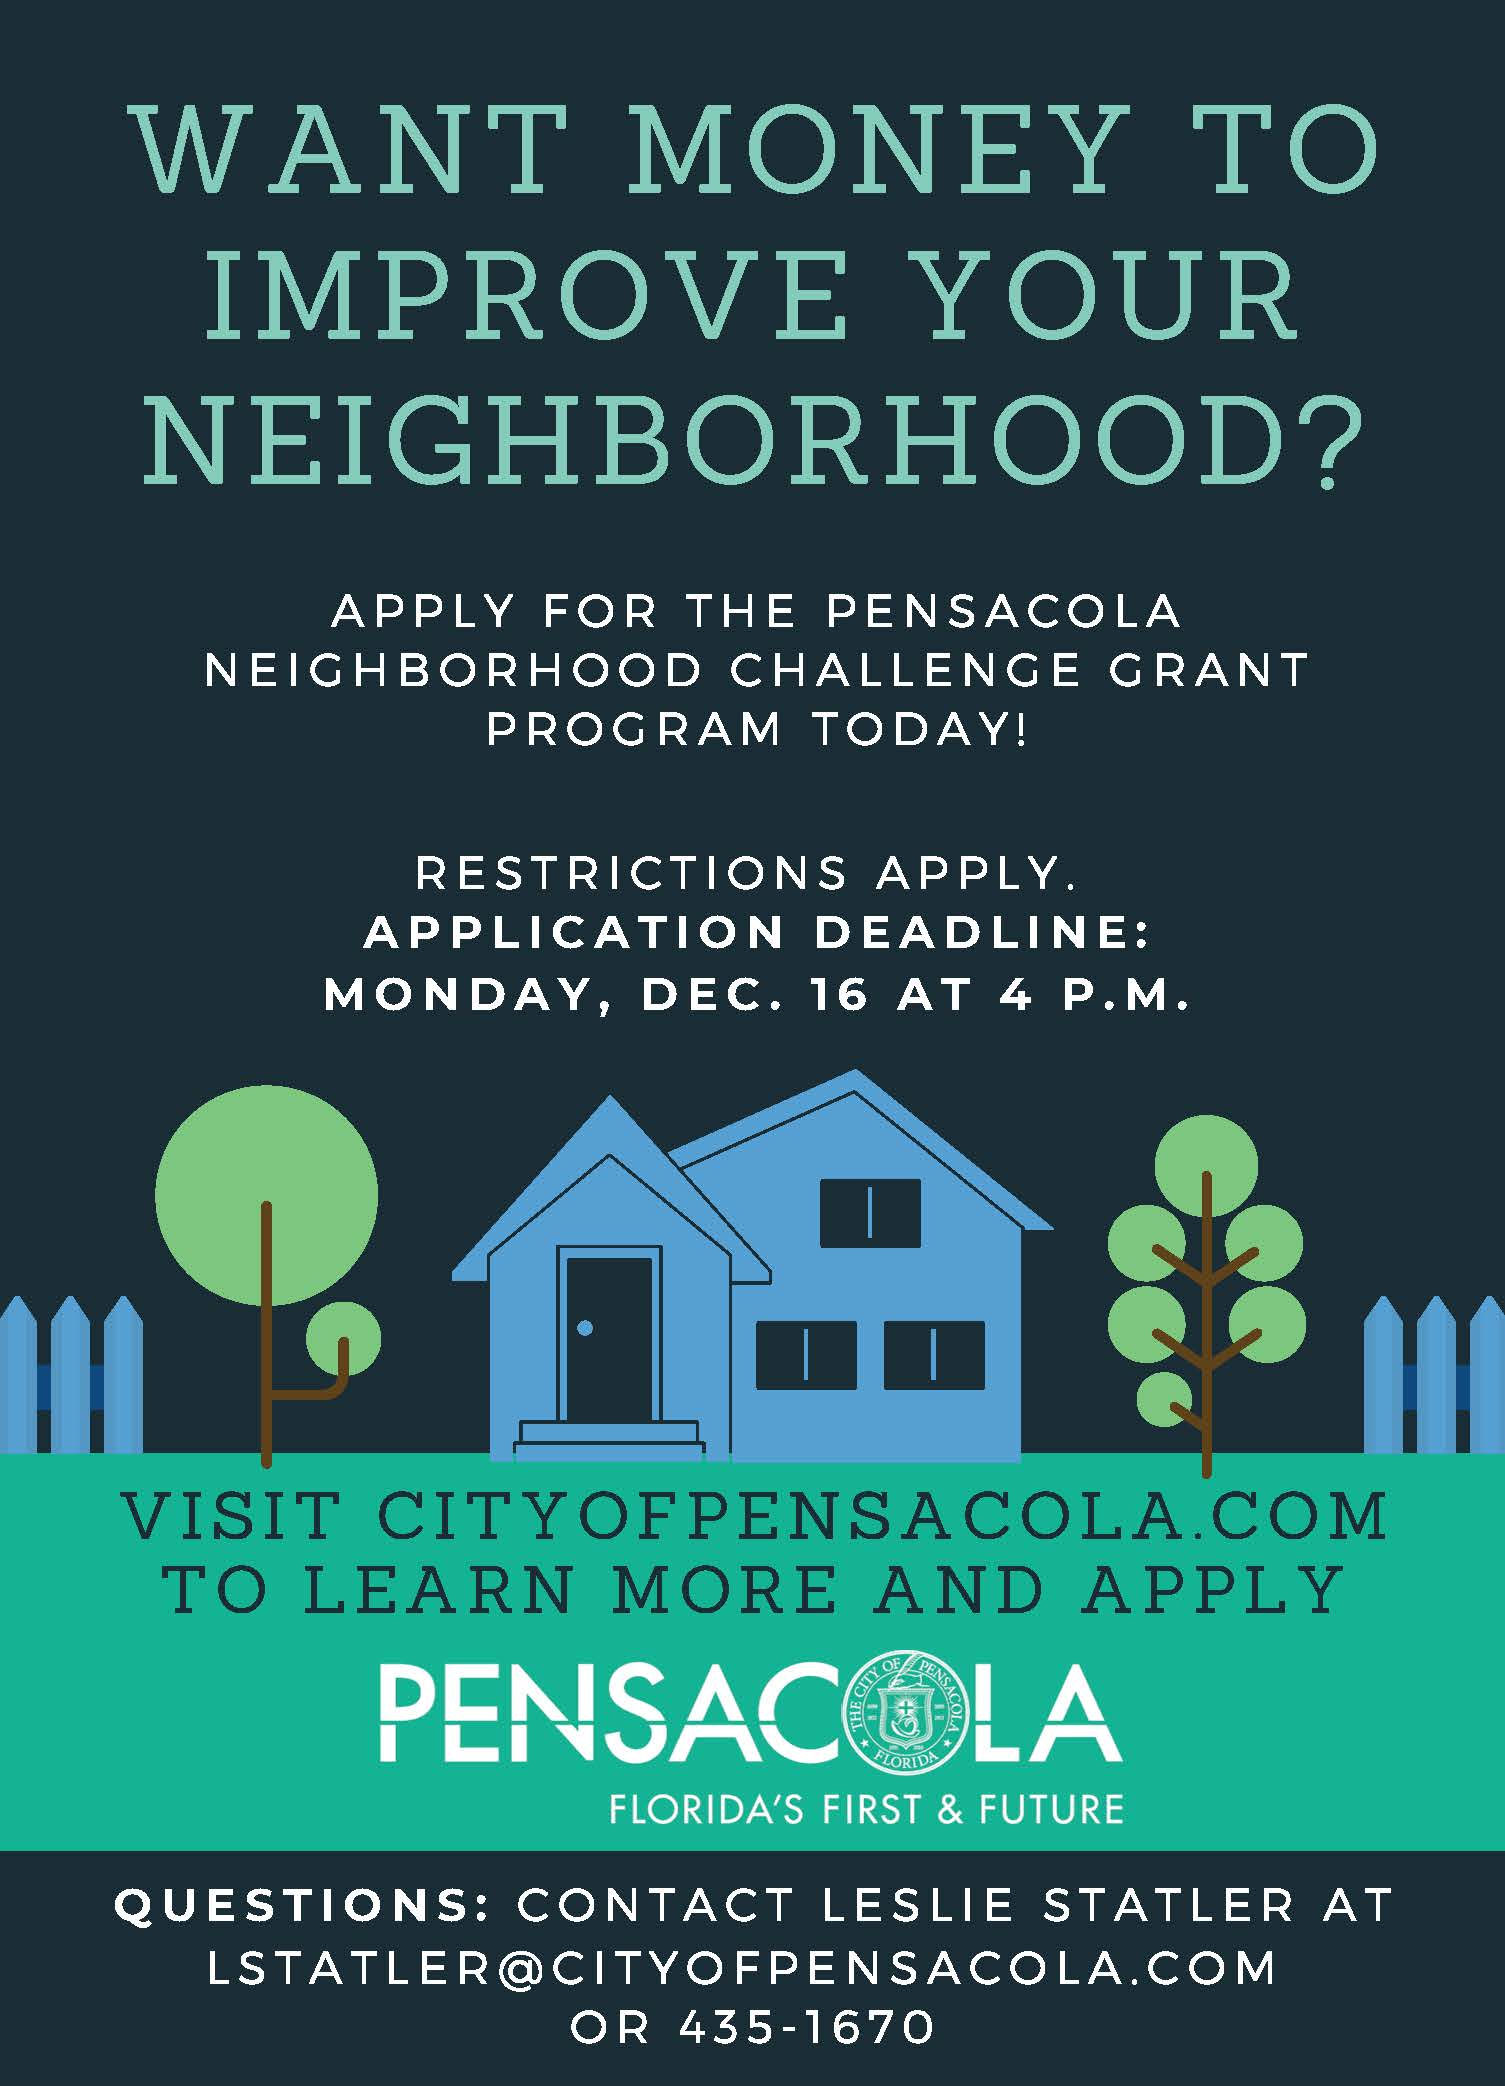 Neighborhood Challenge Grant flyer, visit CityofPensacola.com to learn more.